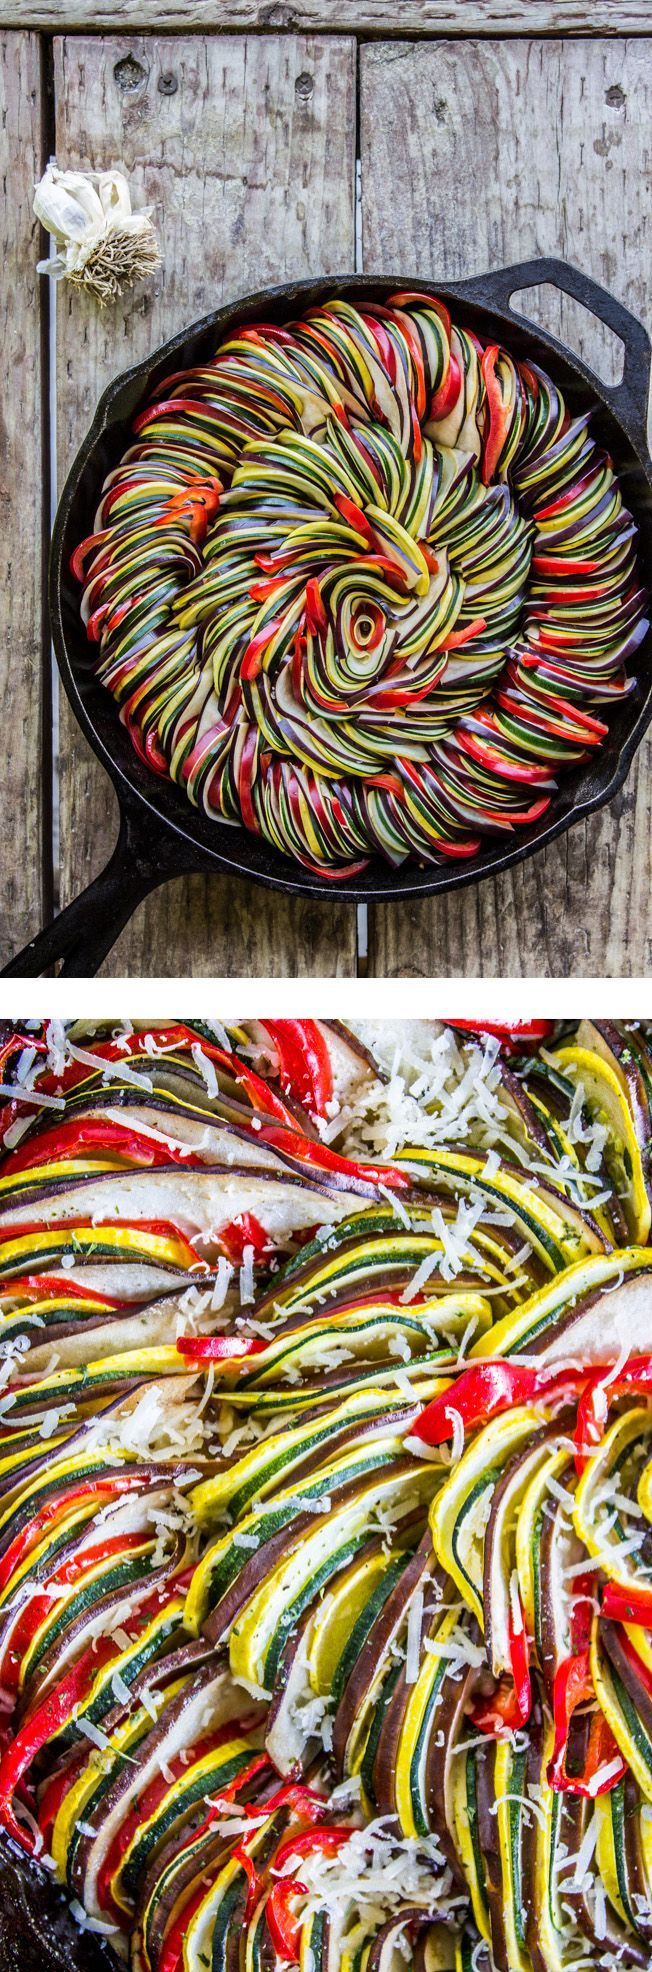 Roasted Garlic Ratatouille by thefoodcharlatan #Ratatouille #Garlic